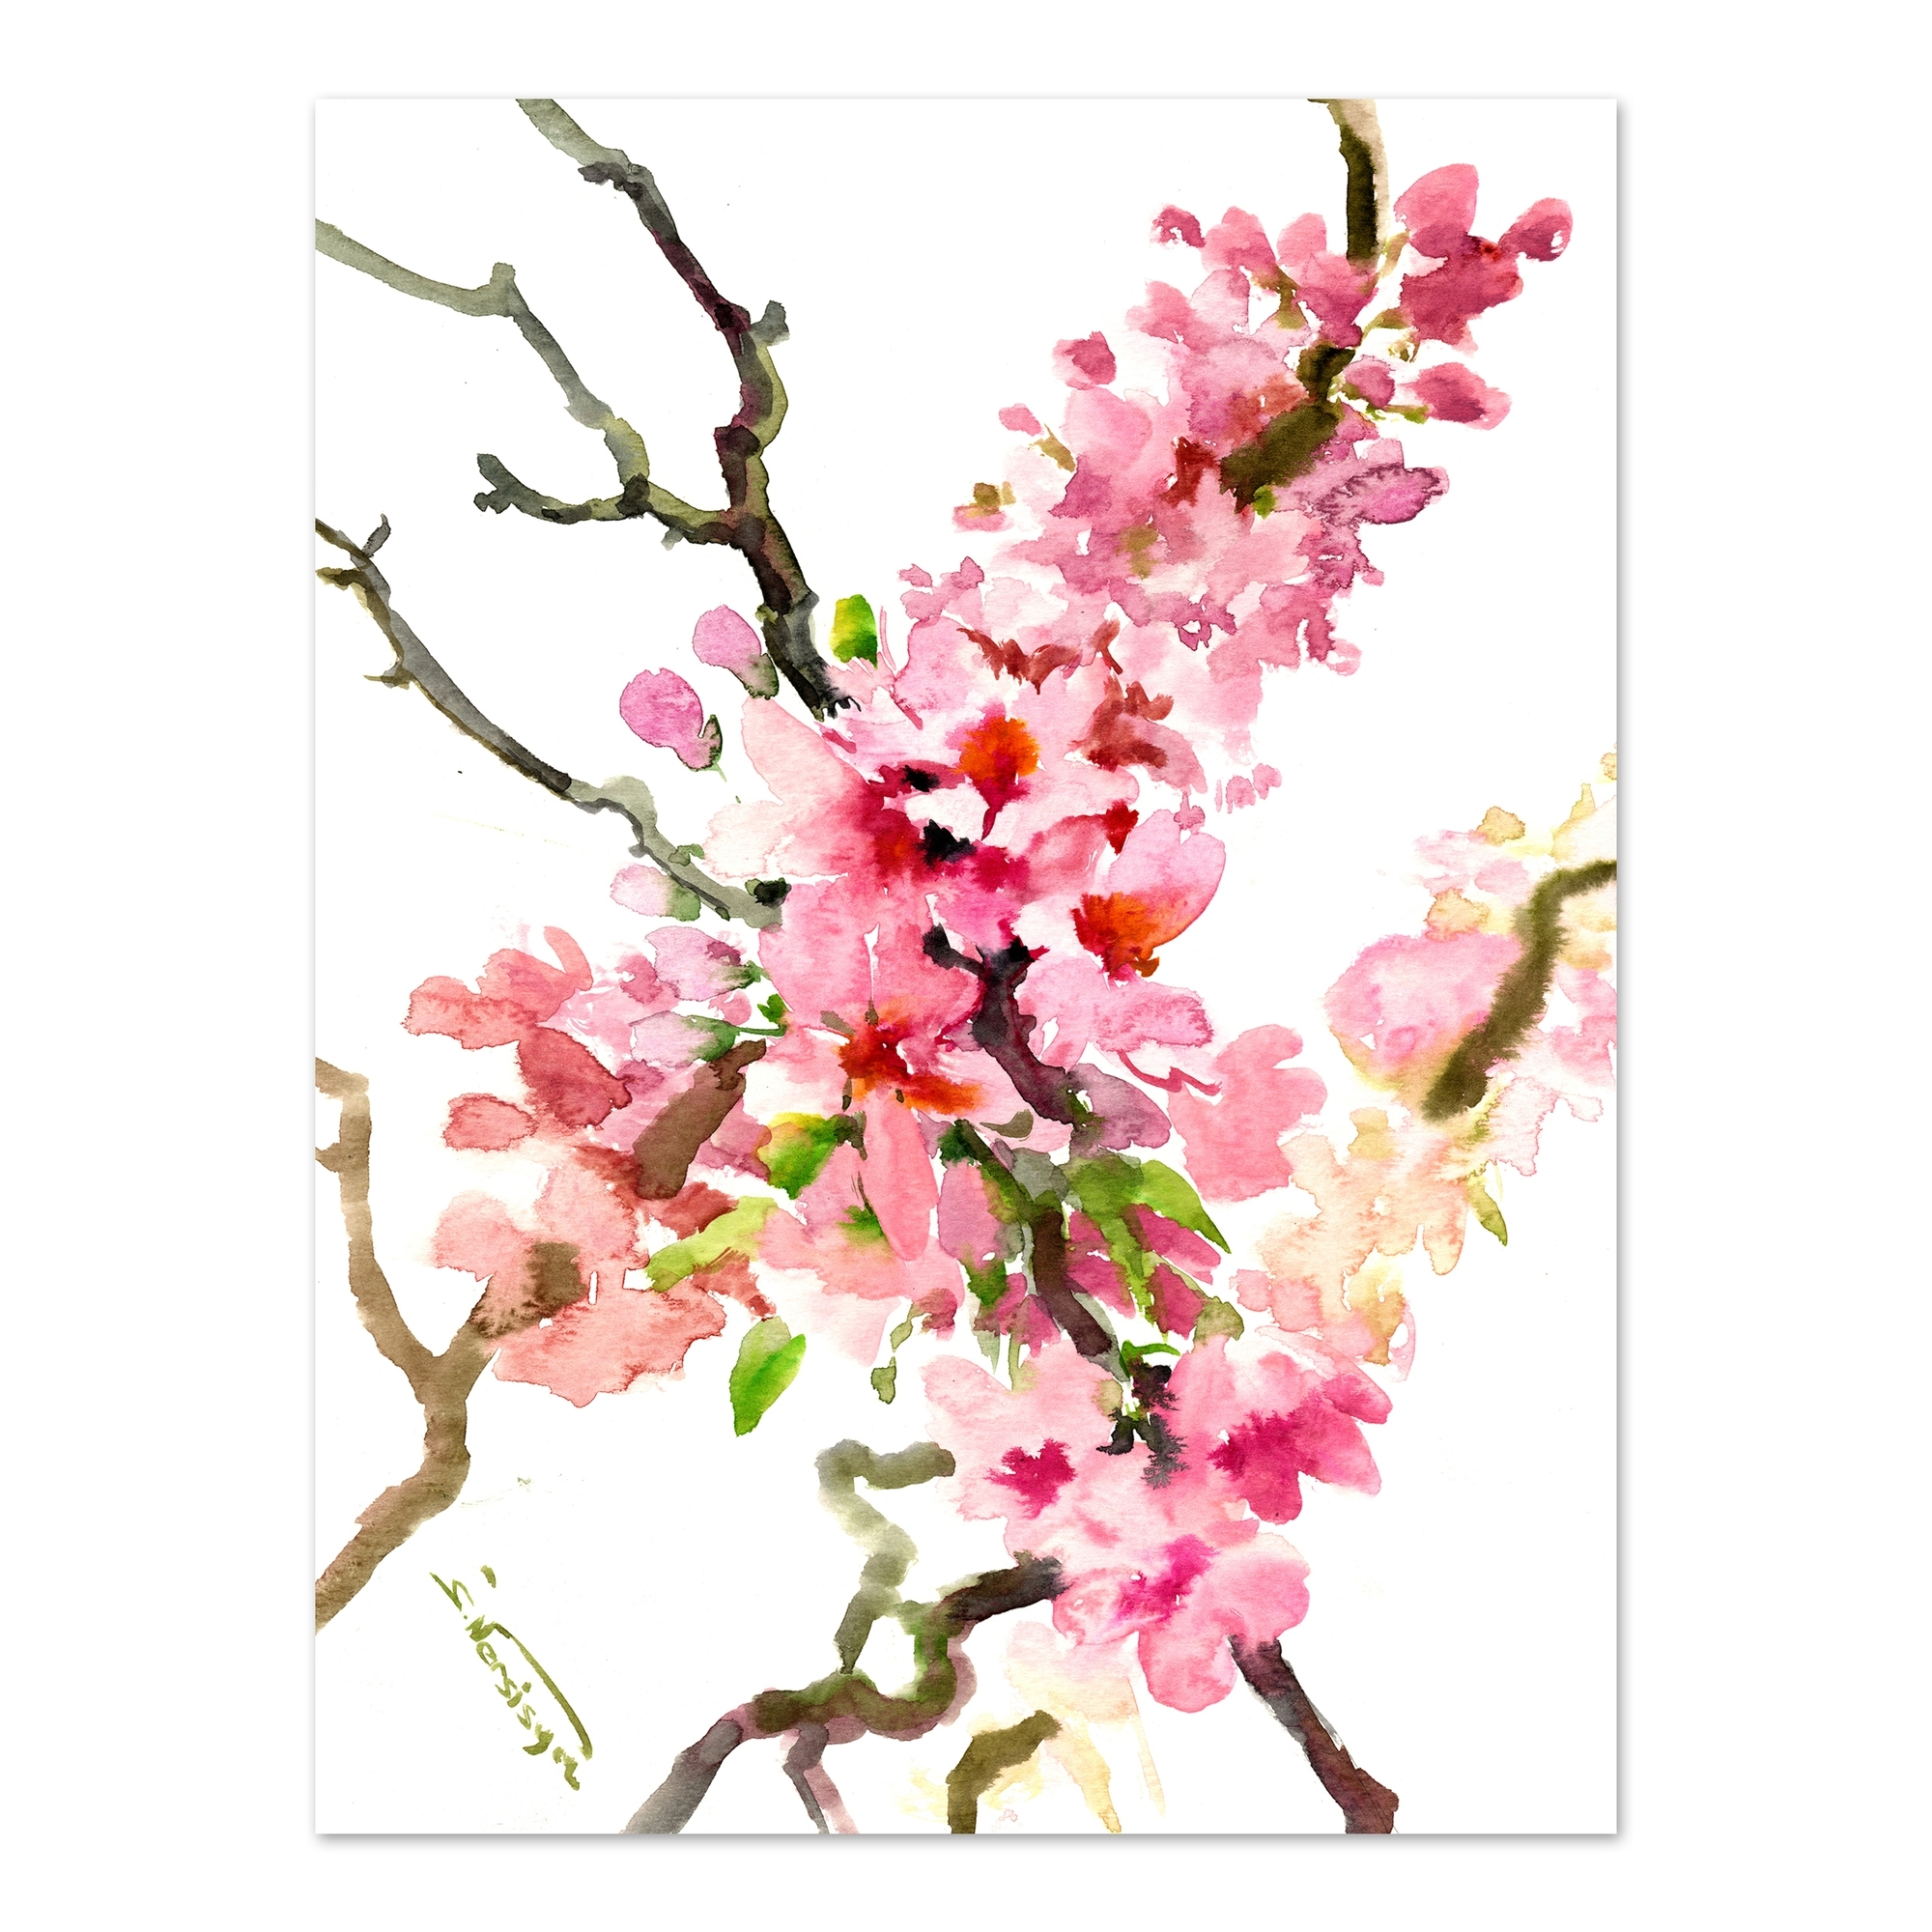 Sakura Cherry Blossom 2 Printed Wall Art | Temple & Webster Throughout Most Current Cherry Blossom Wall Art (View 11 of 20)